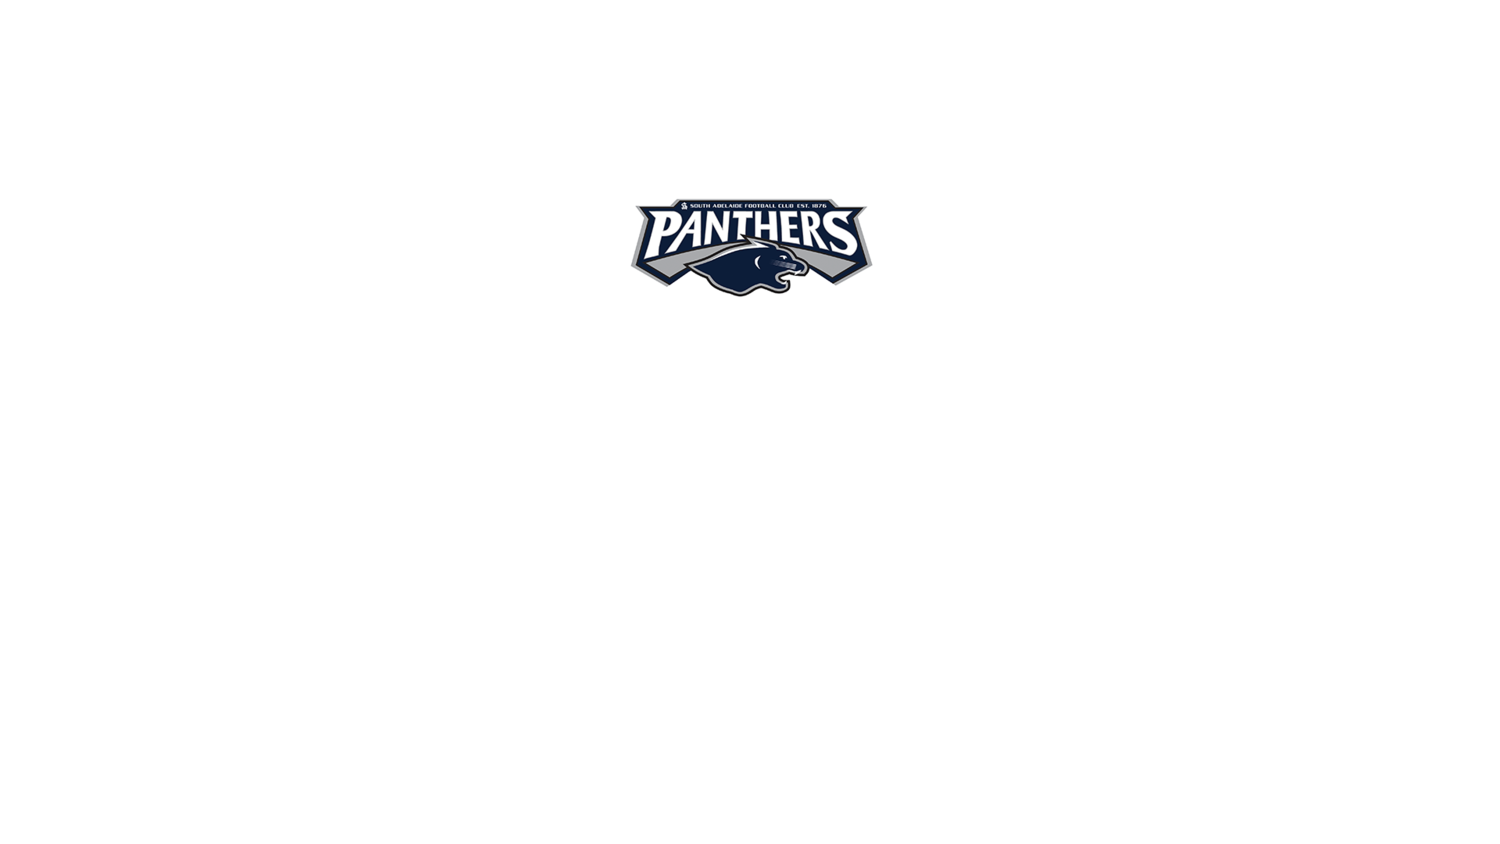 Jimmy deane s entertainment. Youtube clipart cs go